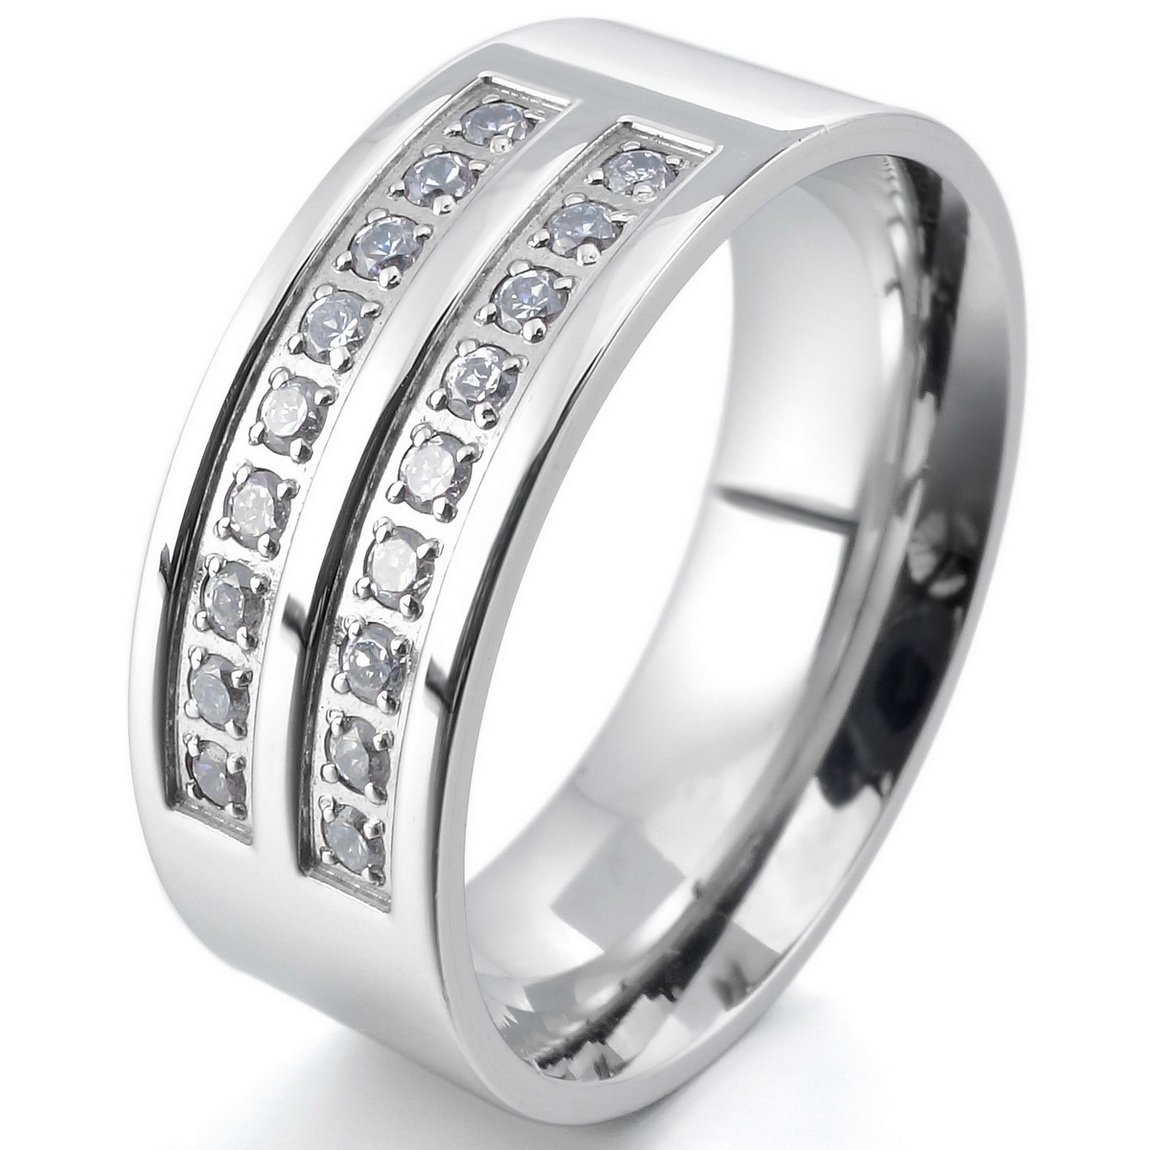 INBLUE Men's 8mm Stainless Steel Ring CZ Silver Tone Comfort Fit Band Wedding Size12 by INBLUE (Image #1)